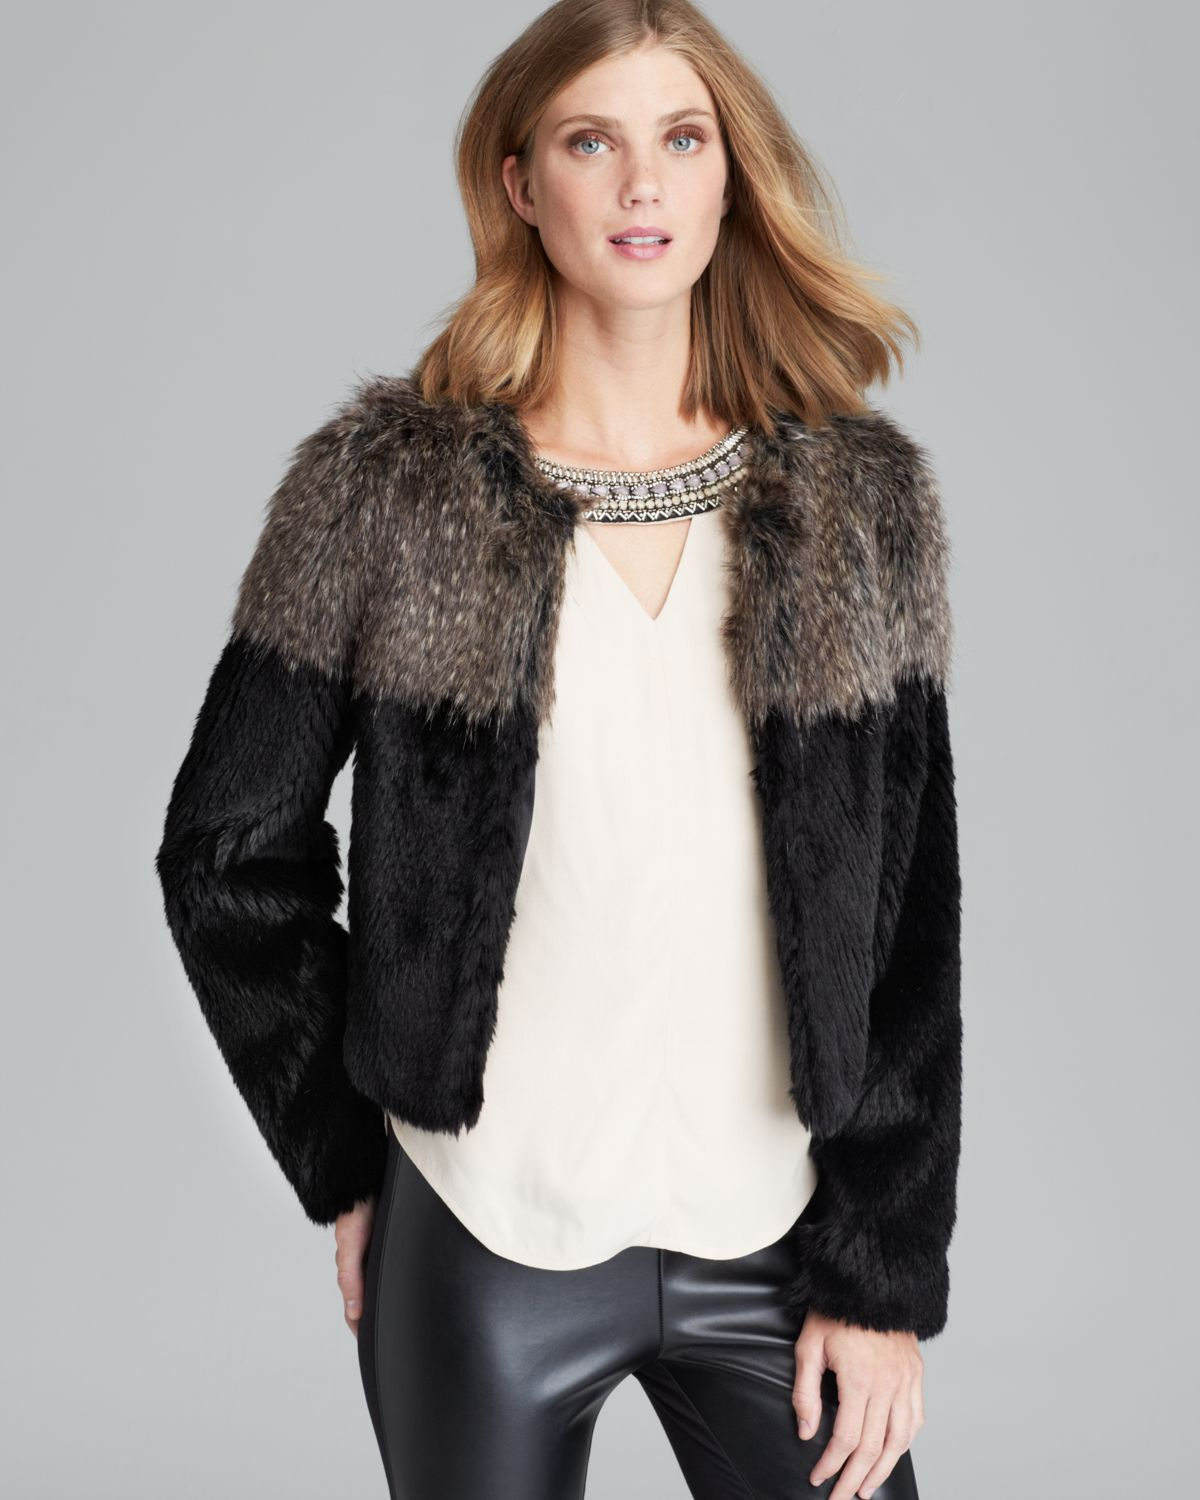 Twelfth Street by Cynthia Vincent Jacket - Two Tone Faux Fur | Bloomingdale's